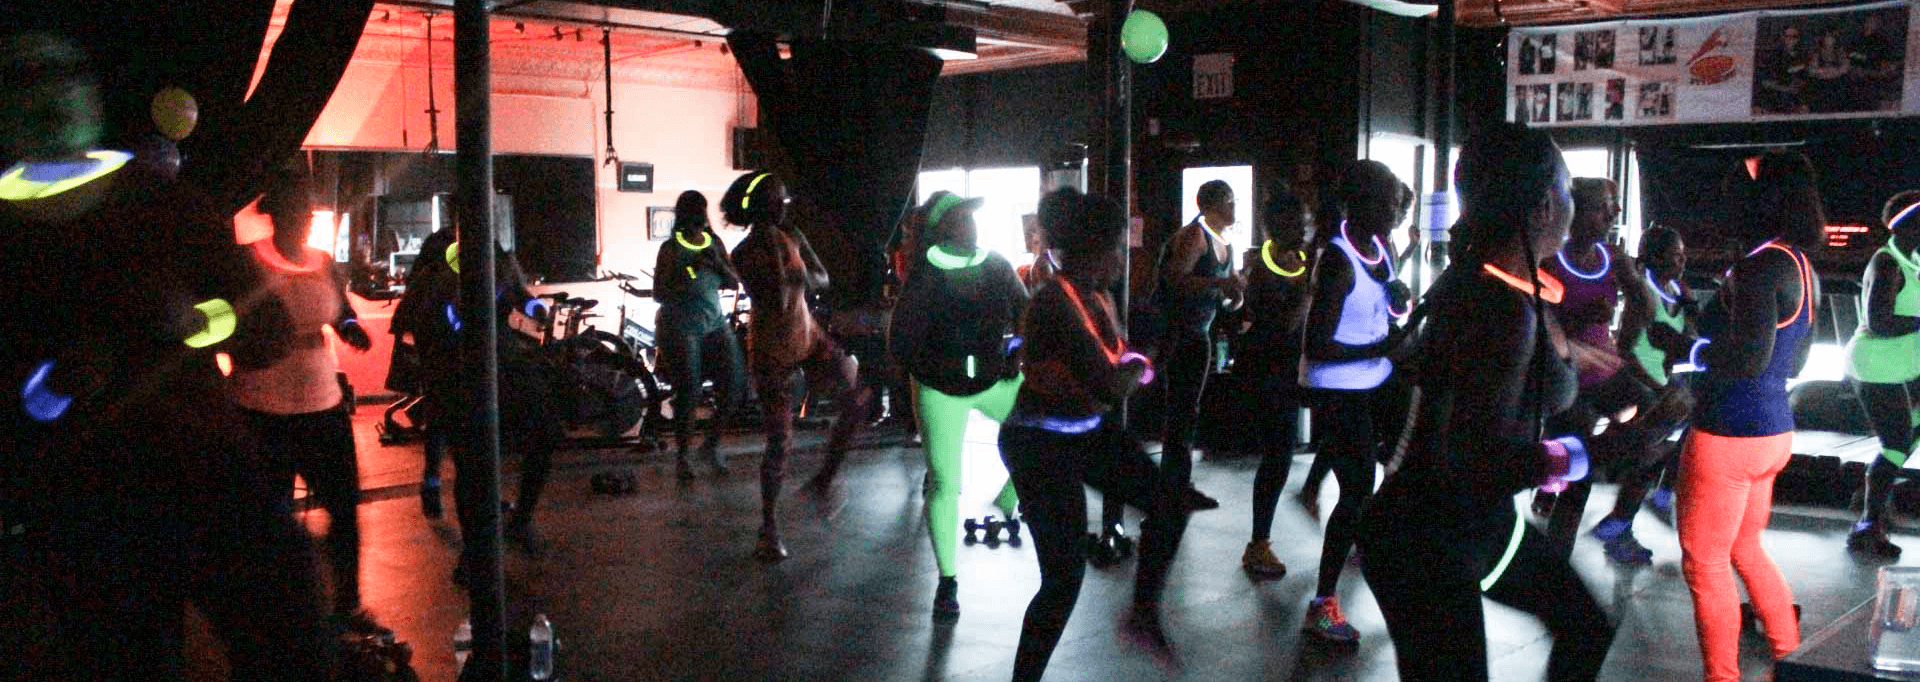 Bfit Fitness Glow Workout